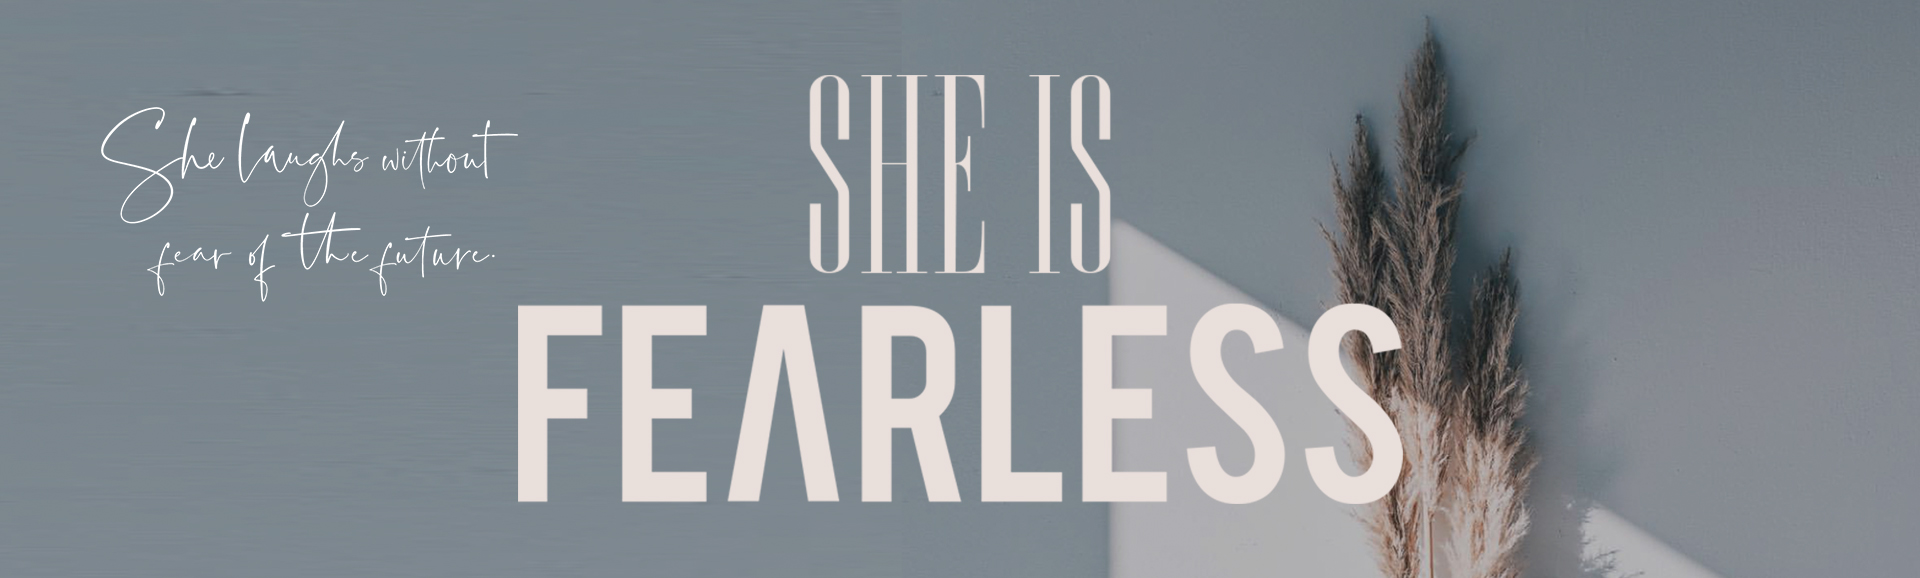 banner_she-is-fearless_201809